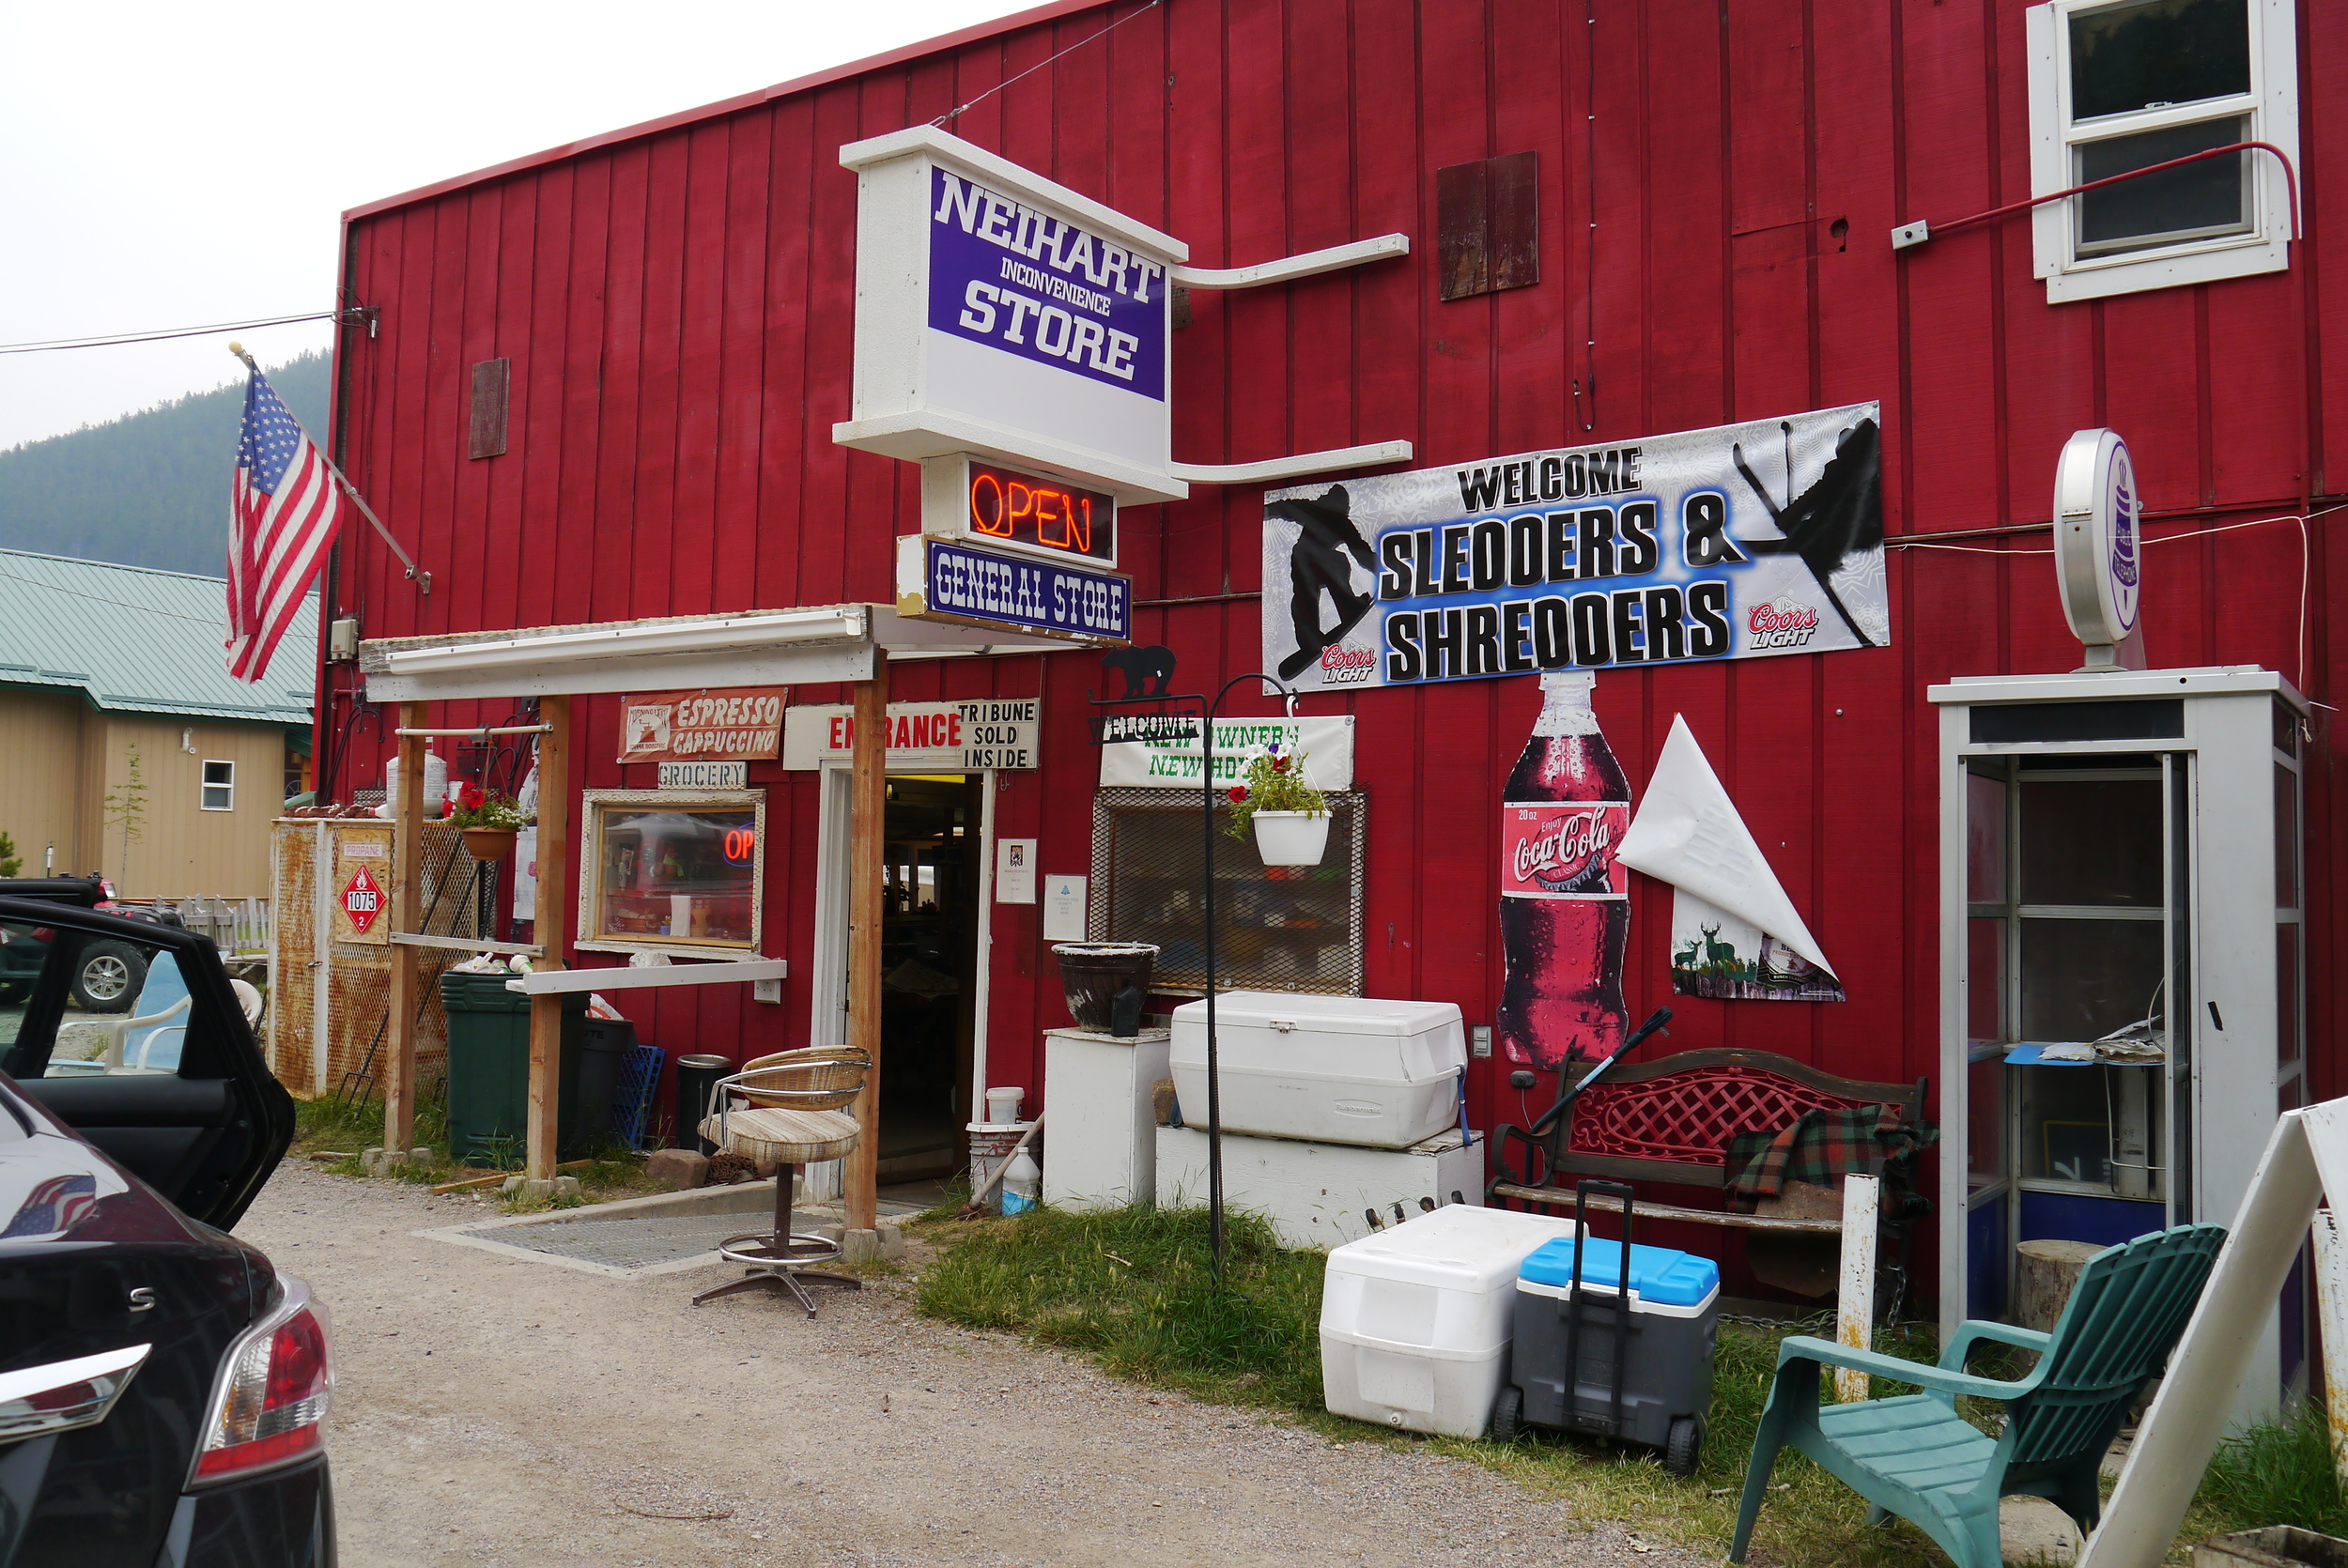 Friendliest place in Montana? All names in the story are changed.